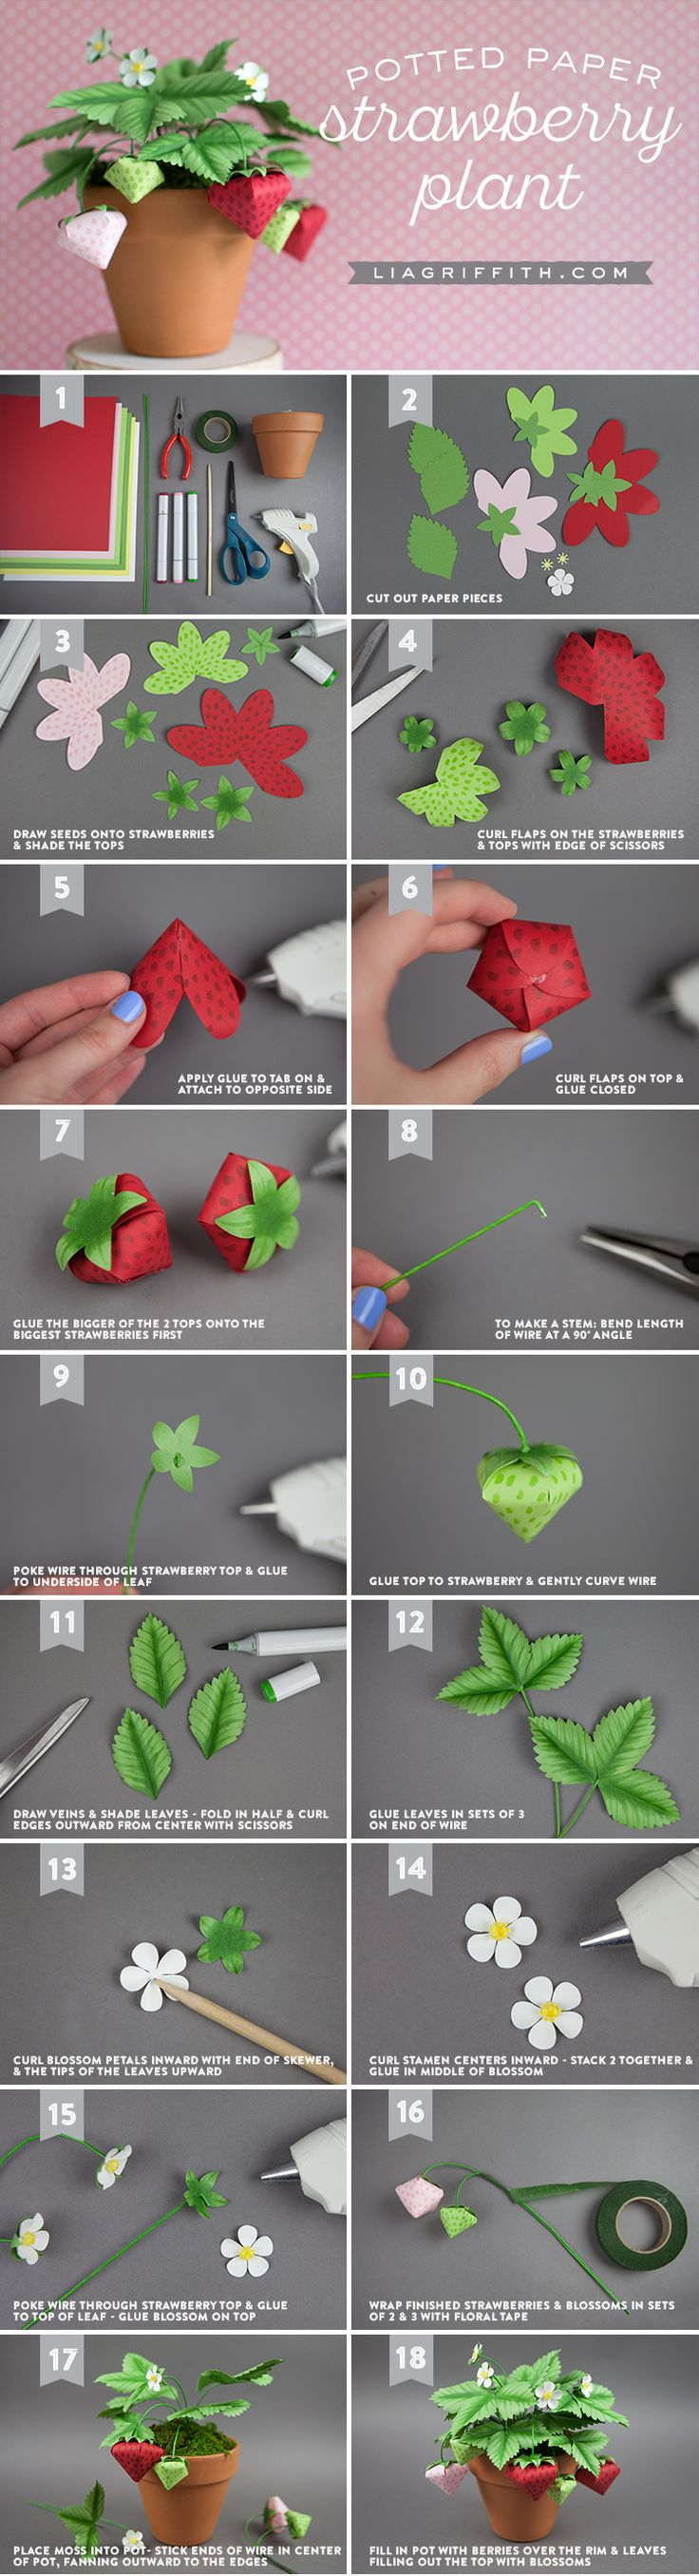 Make a Potted Paper Strawberry Plant – FREE Pattern and Tutorial